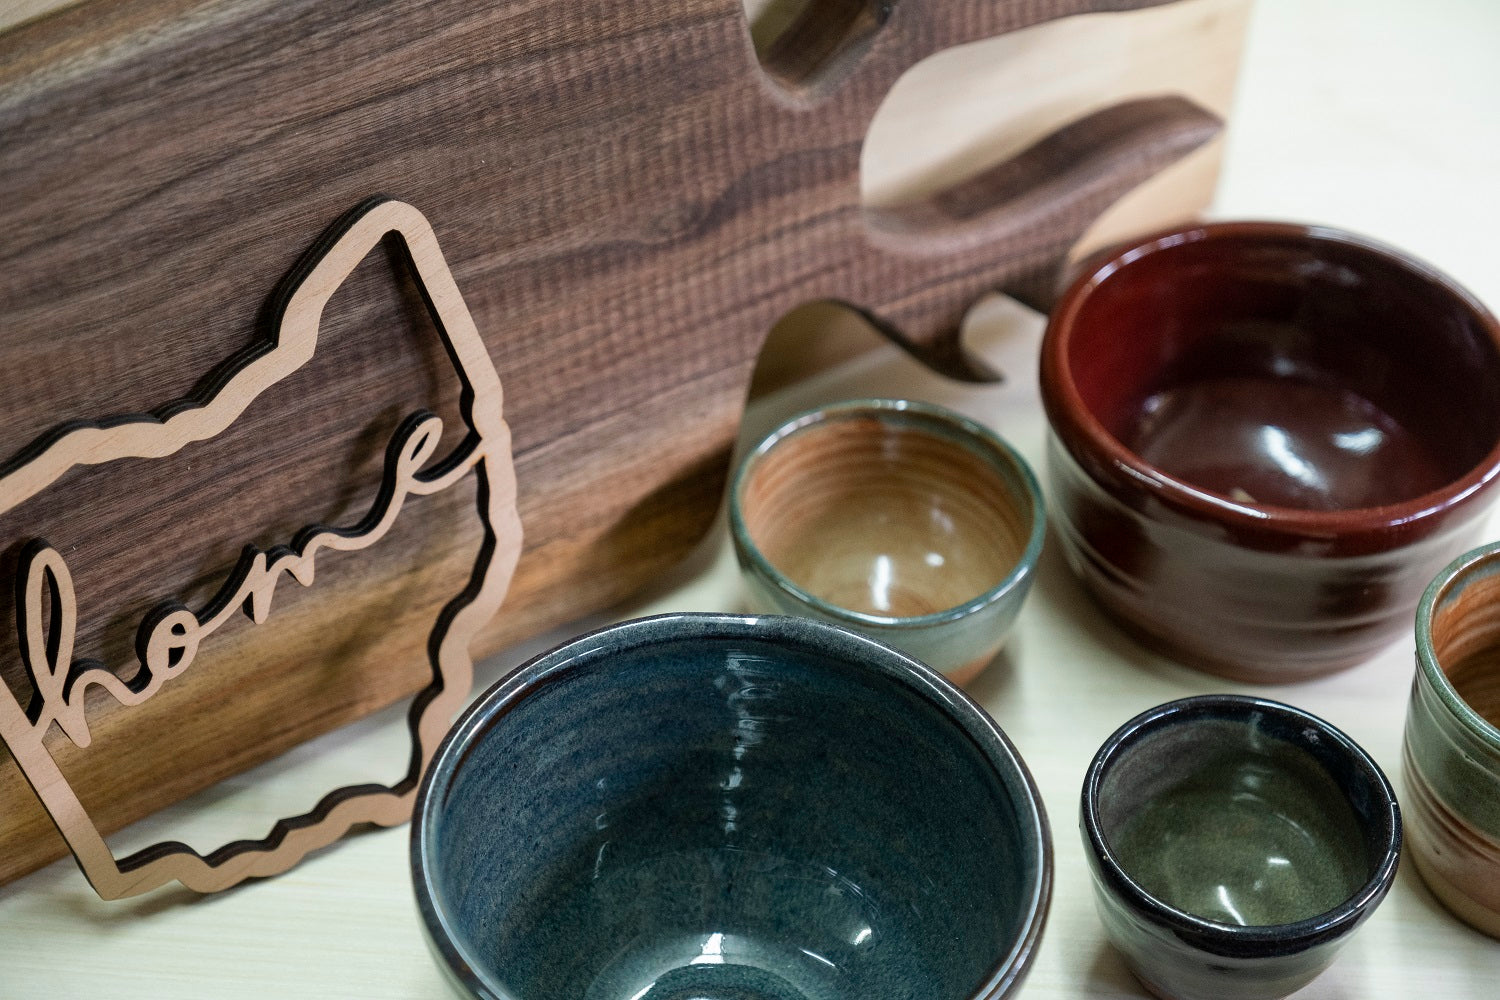 Wood pottery and laser cut goods